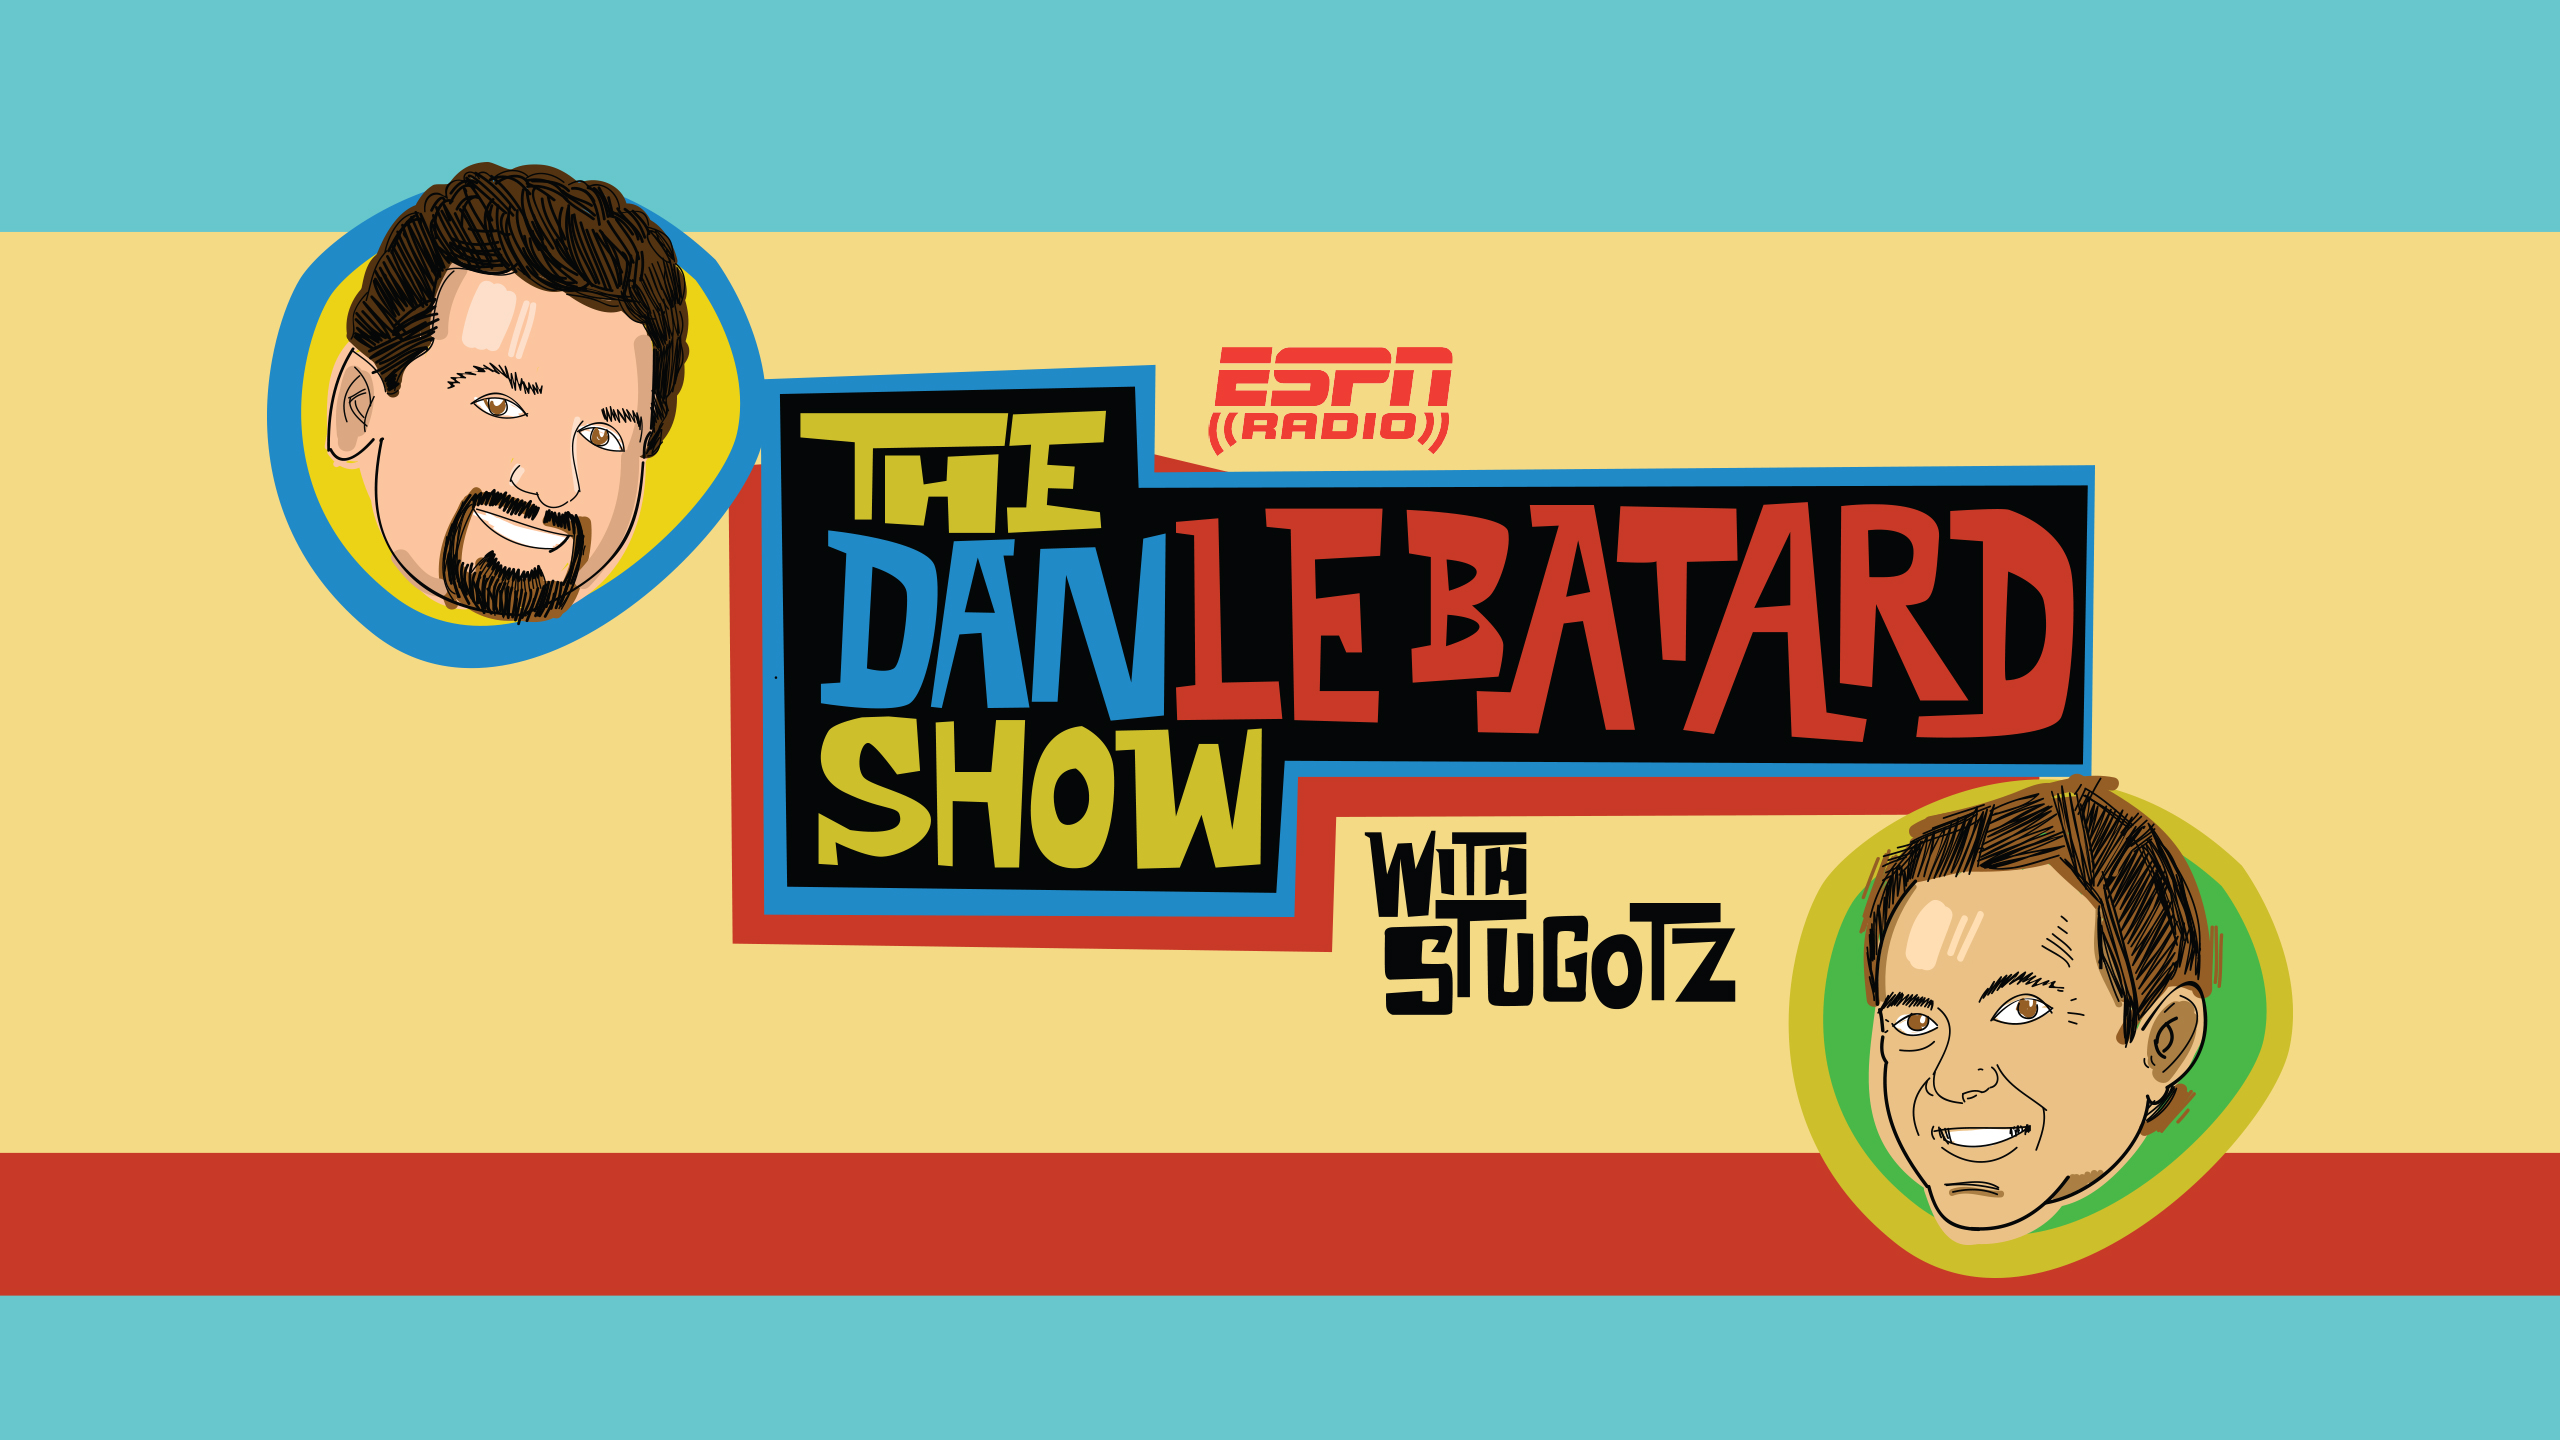 Mon, 12/10 - The Dan Le Batard Show with Stugotz Presented by Progressive